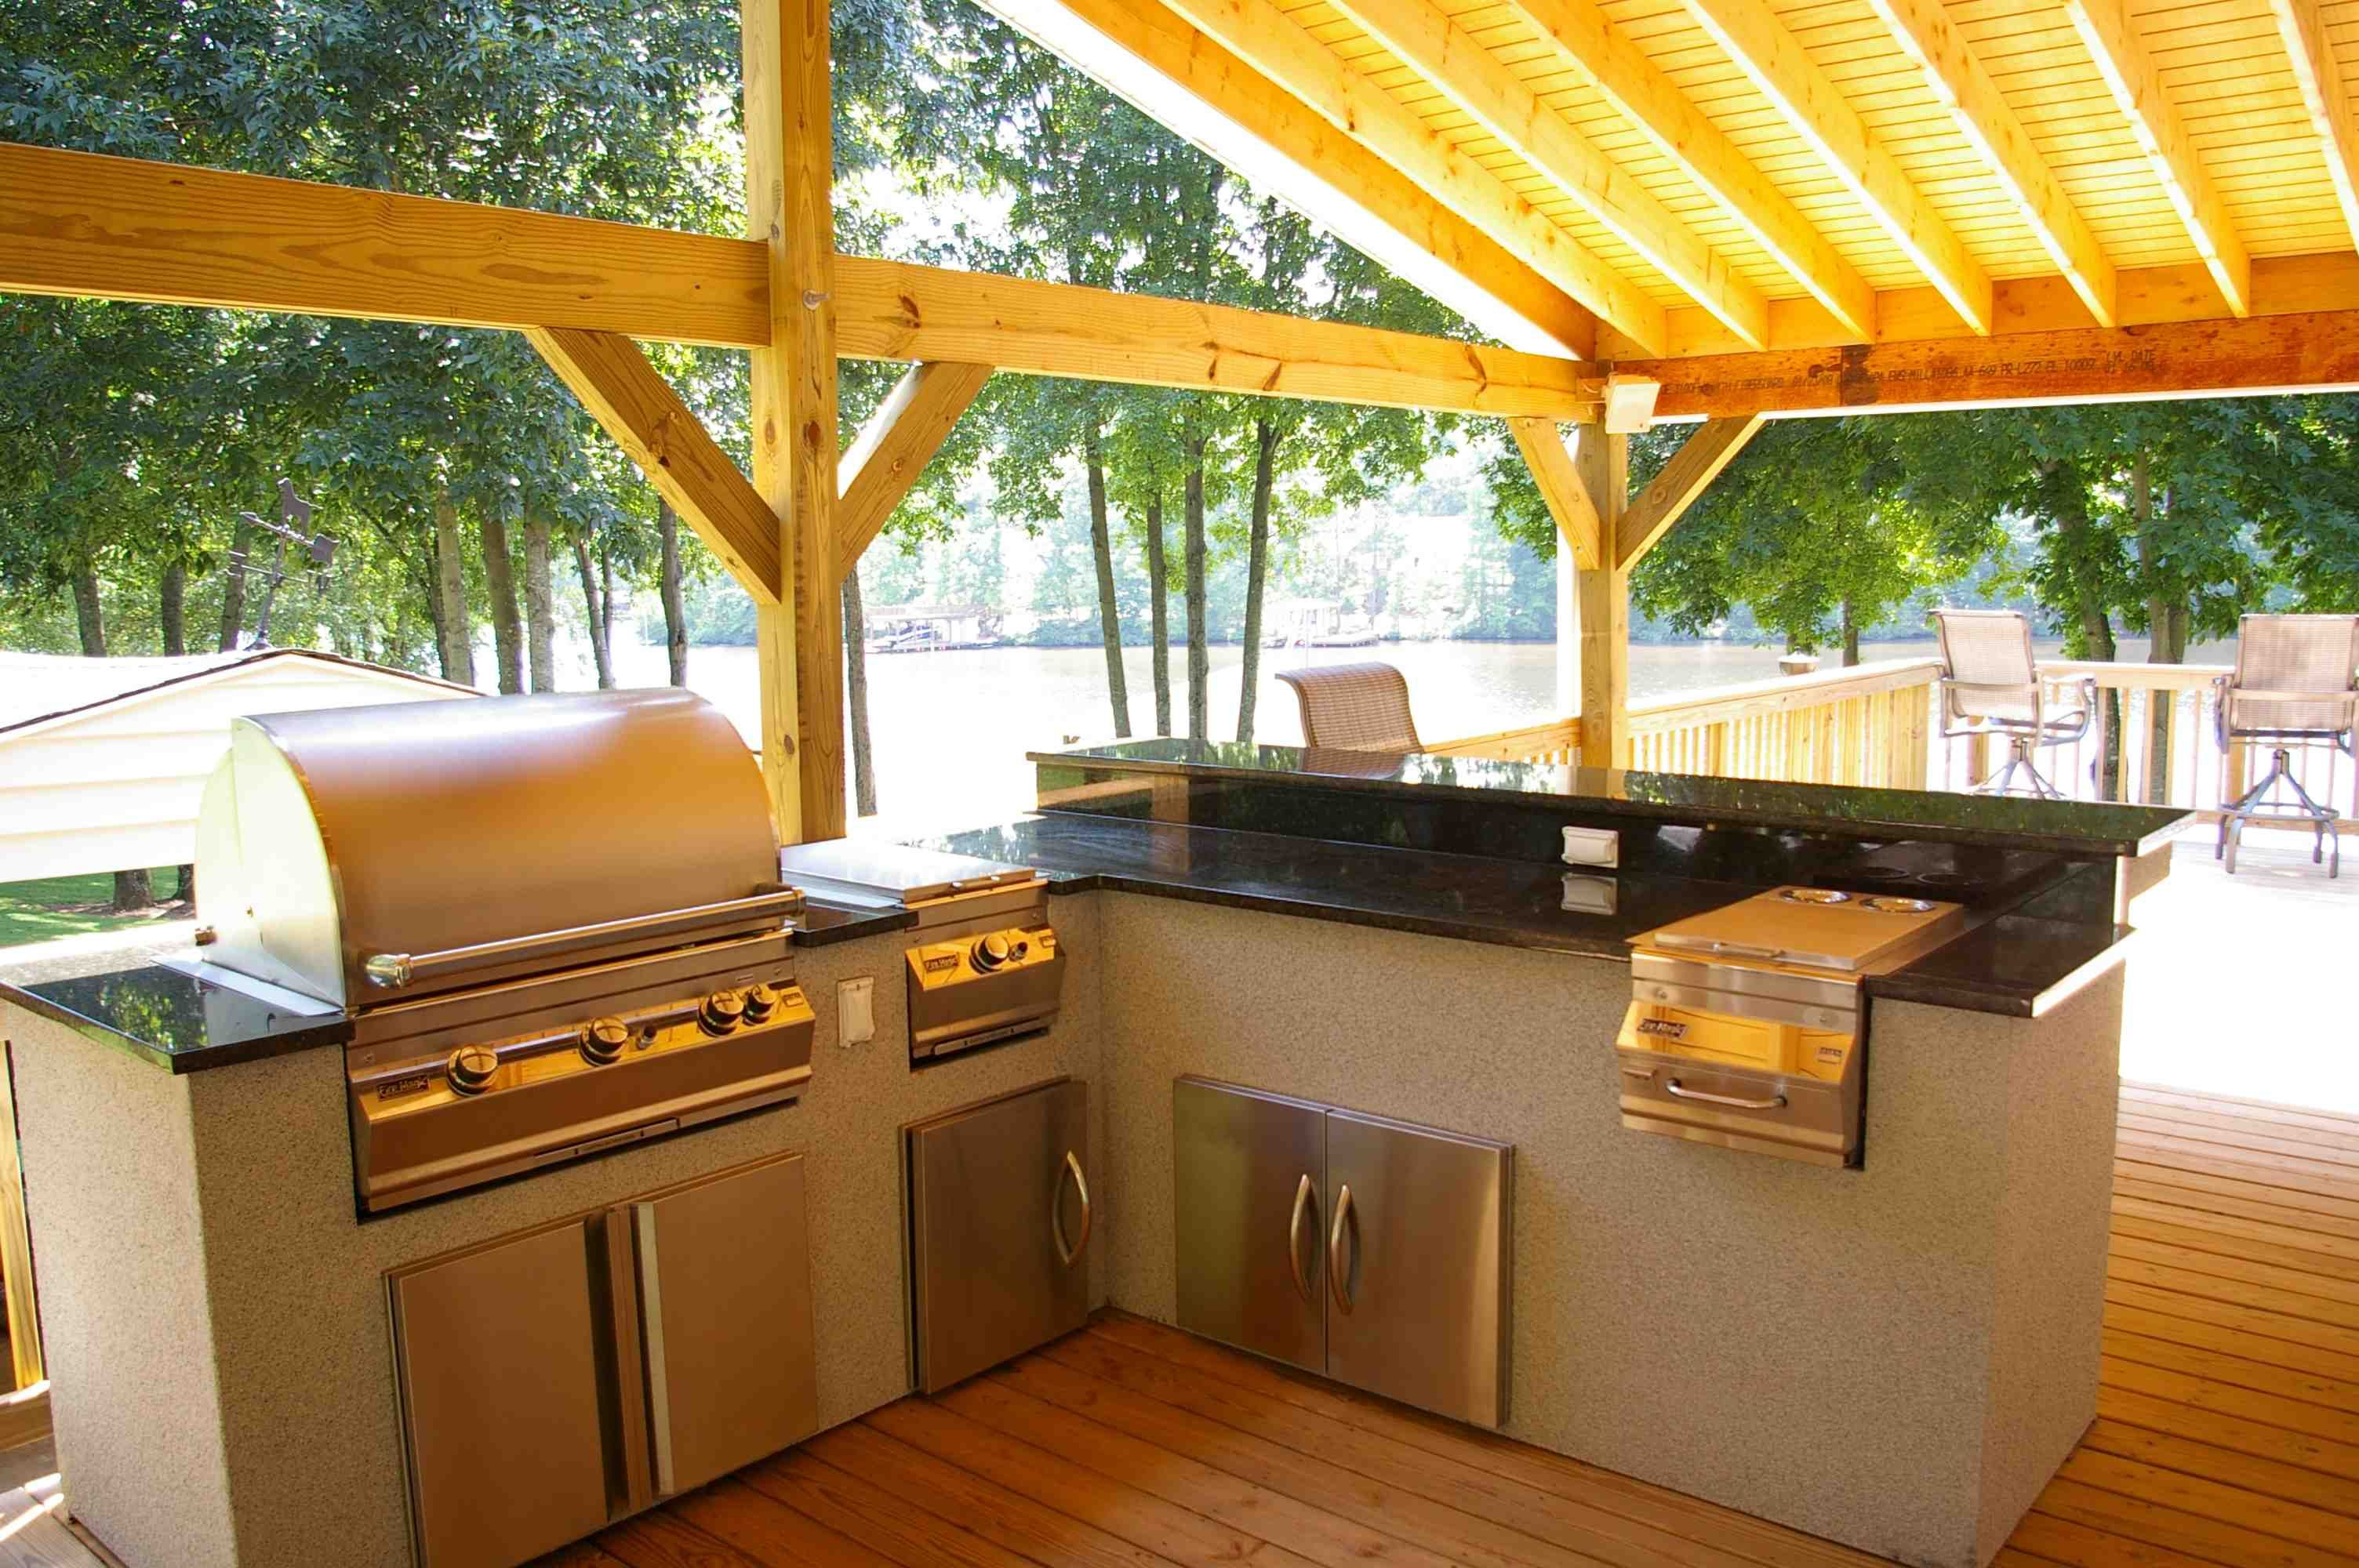 Wonderful Small Patio Pergola Roof Ideas With Bbq Grilling Island Gorgeous Patio Kitchen Designs 2018